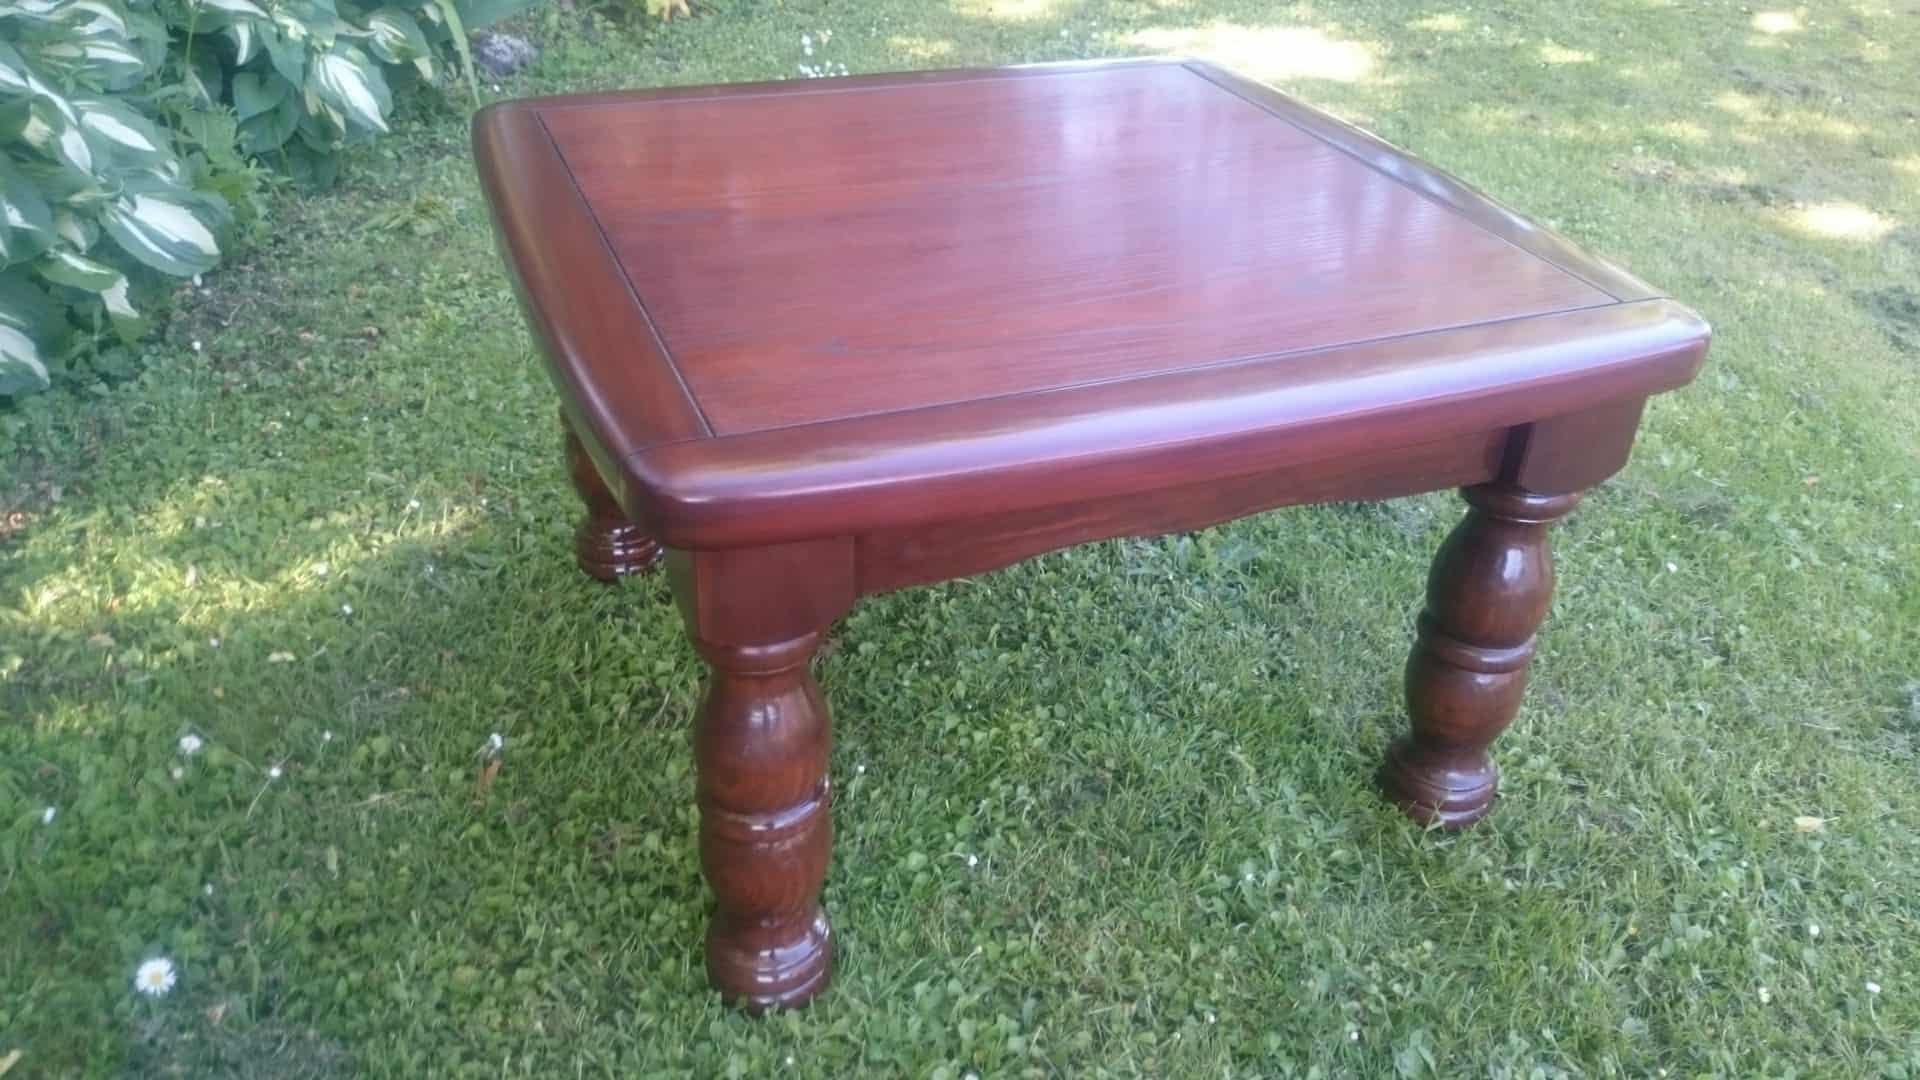 Restored coffee table furniture restoration and repairs christchurch no boundaries furniture Restoration coffee tables